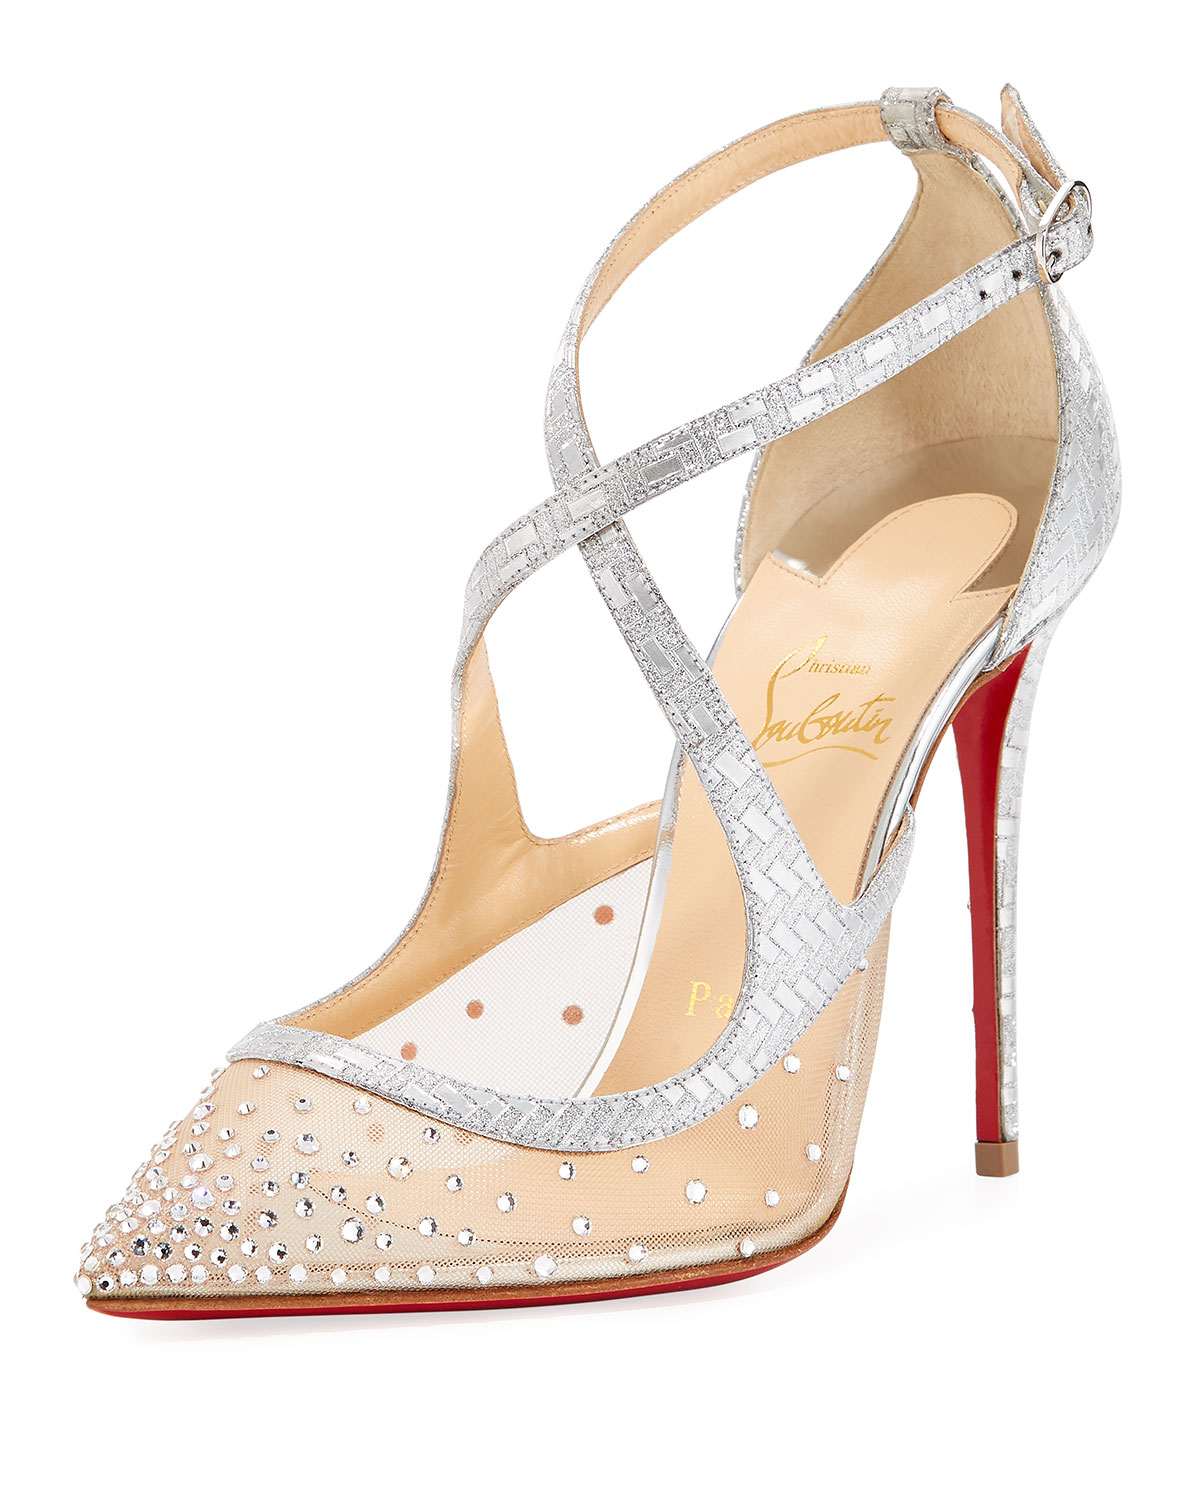 a2488728837e Christian Louboutin Twistissima Strass Strappy Red Sole Pumps ...